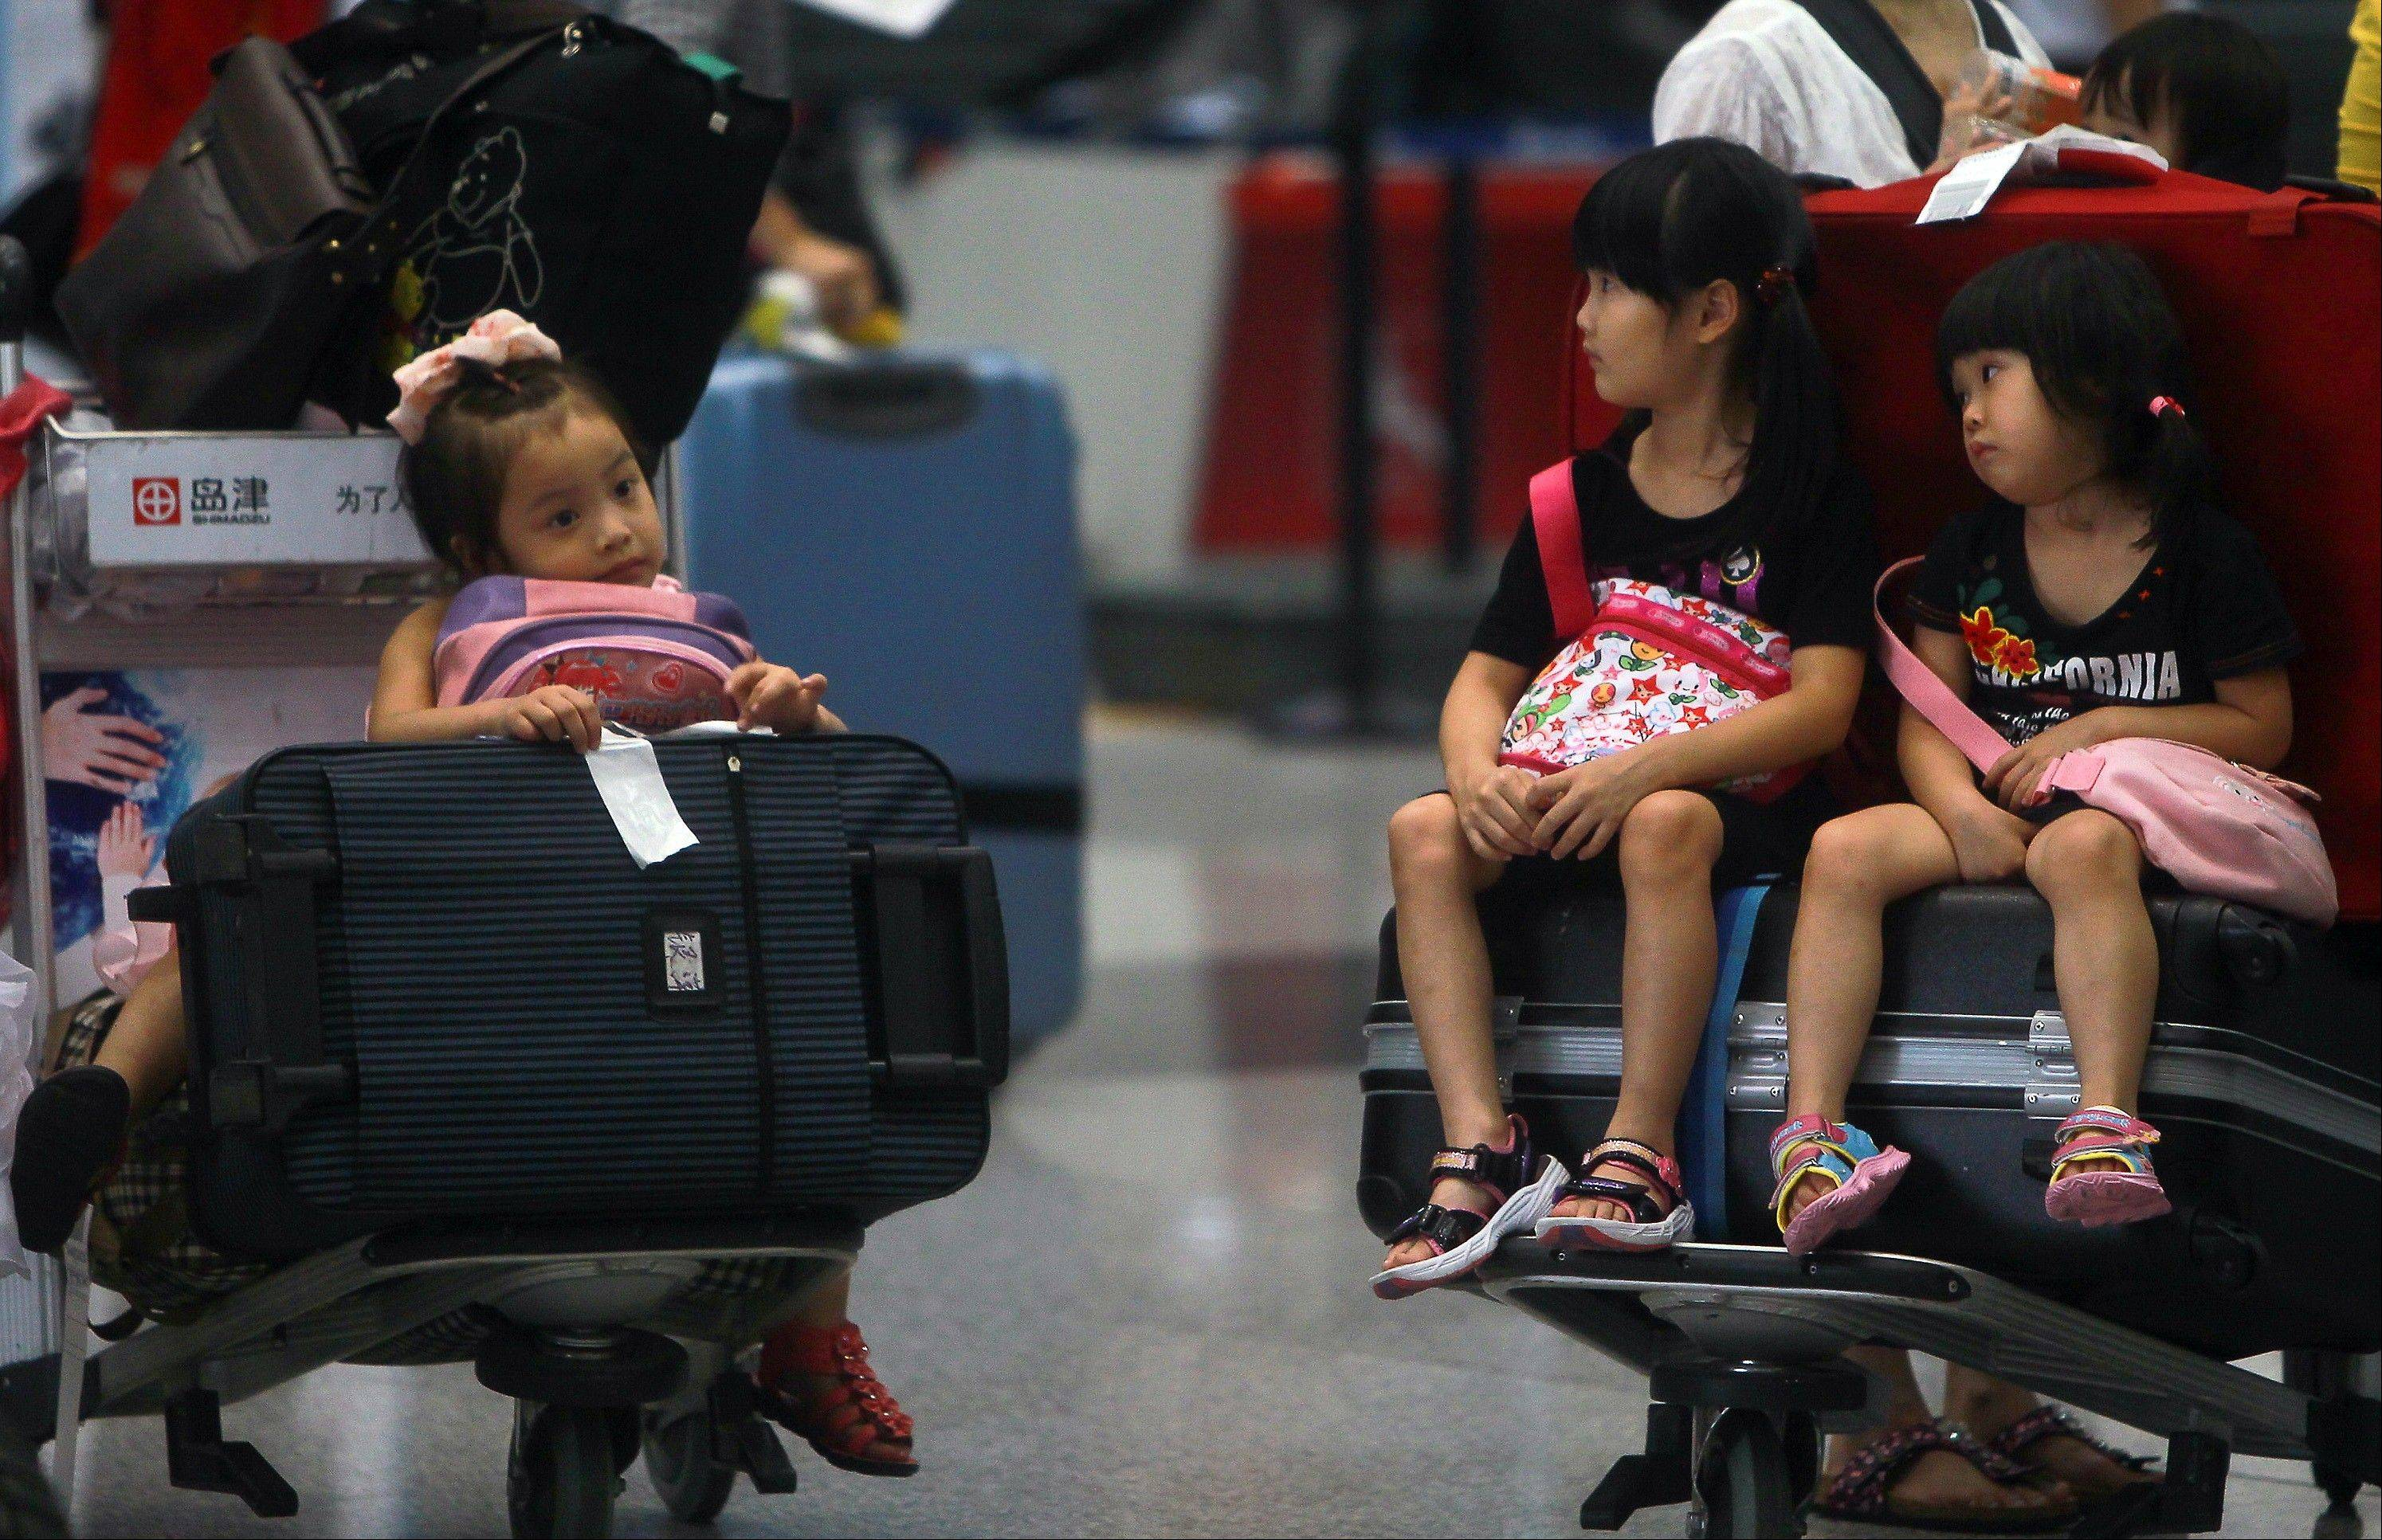 Children sit on the luggage carts Saturday as they stranded at the Beijing Capital International Airport after flights are canceled due to the heavy rains.